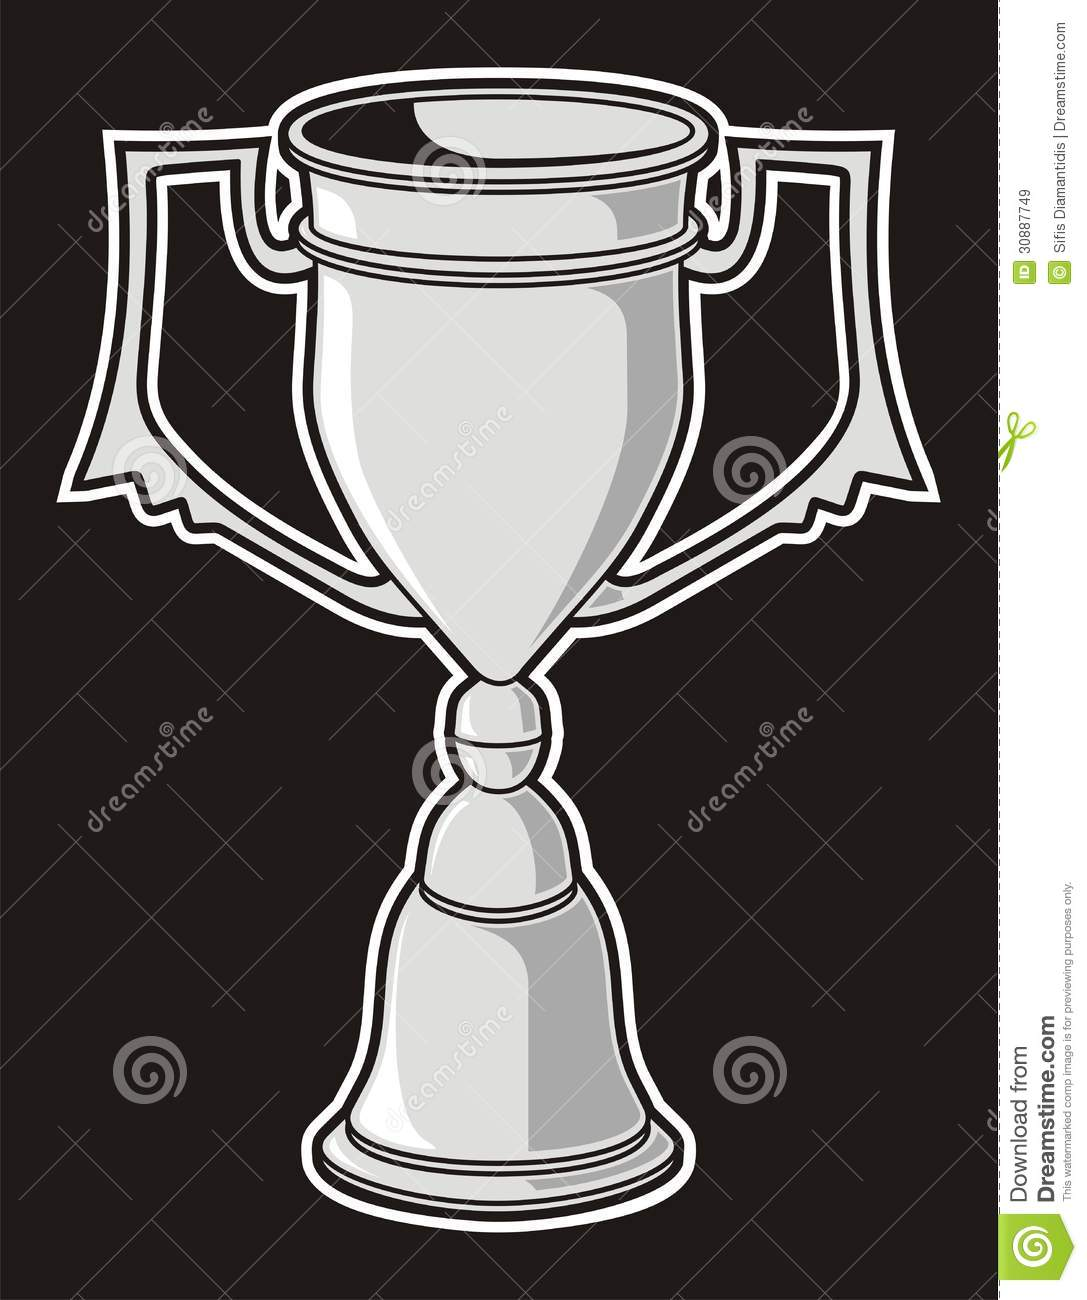 Download Cup award stock vector. Illustration of victory, sport - 30887749